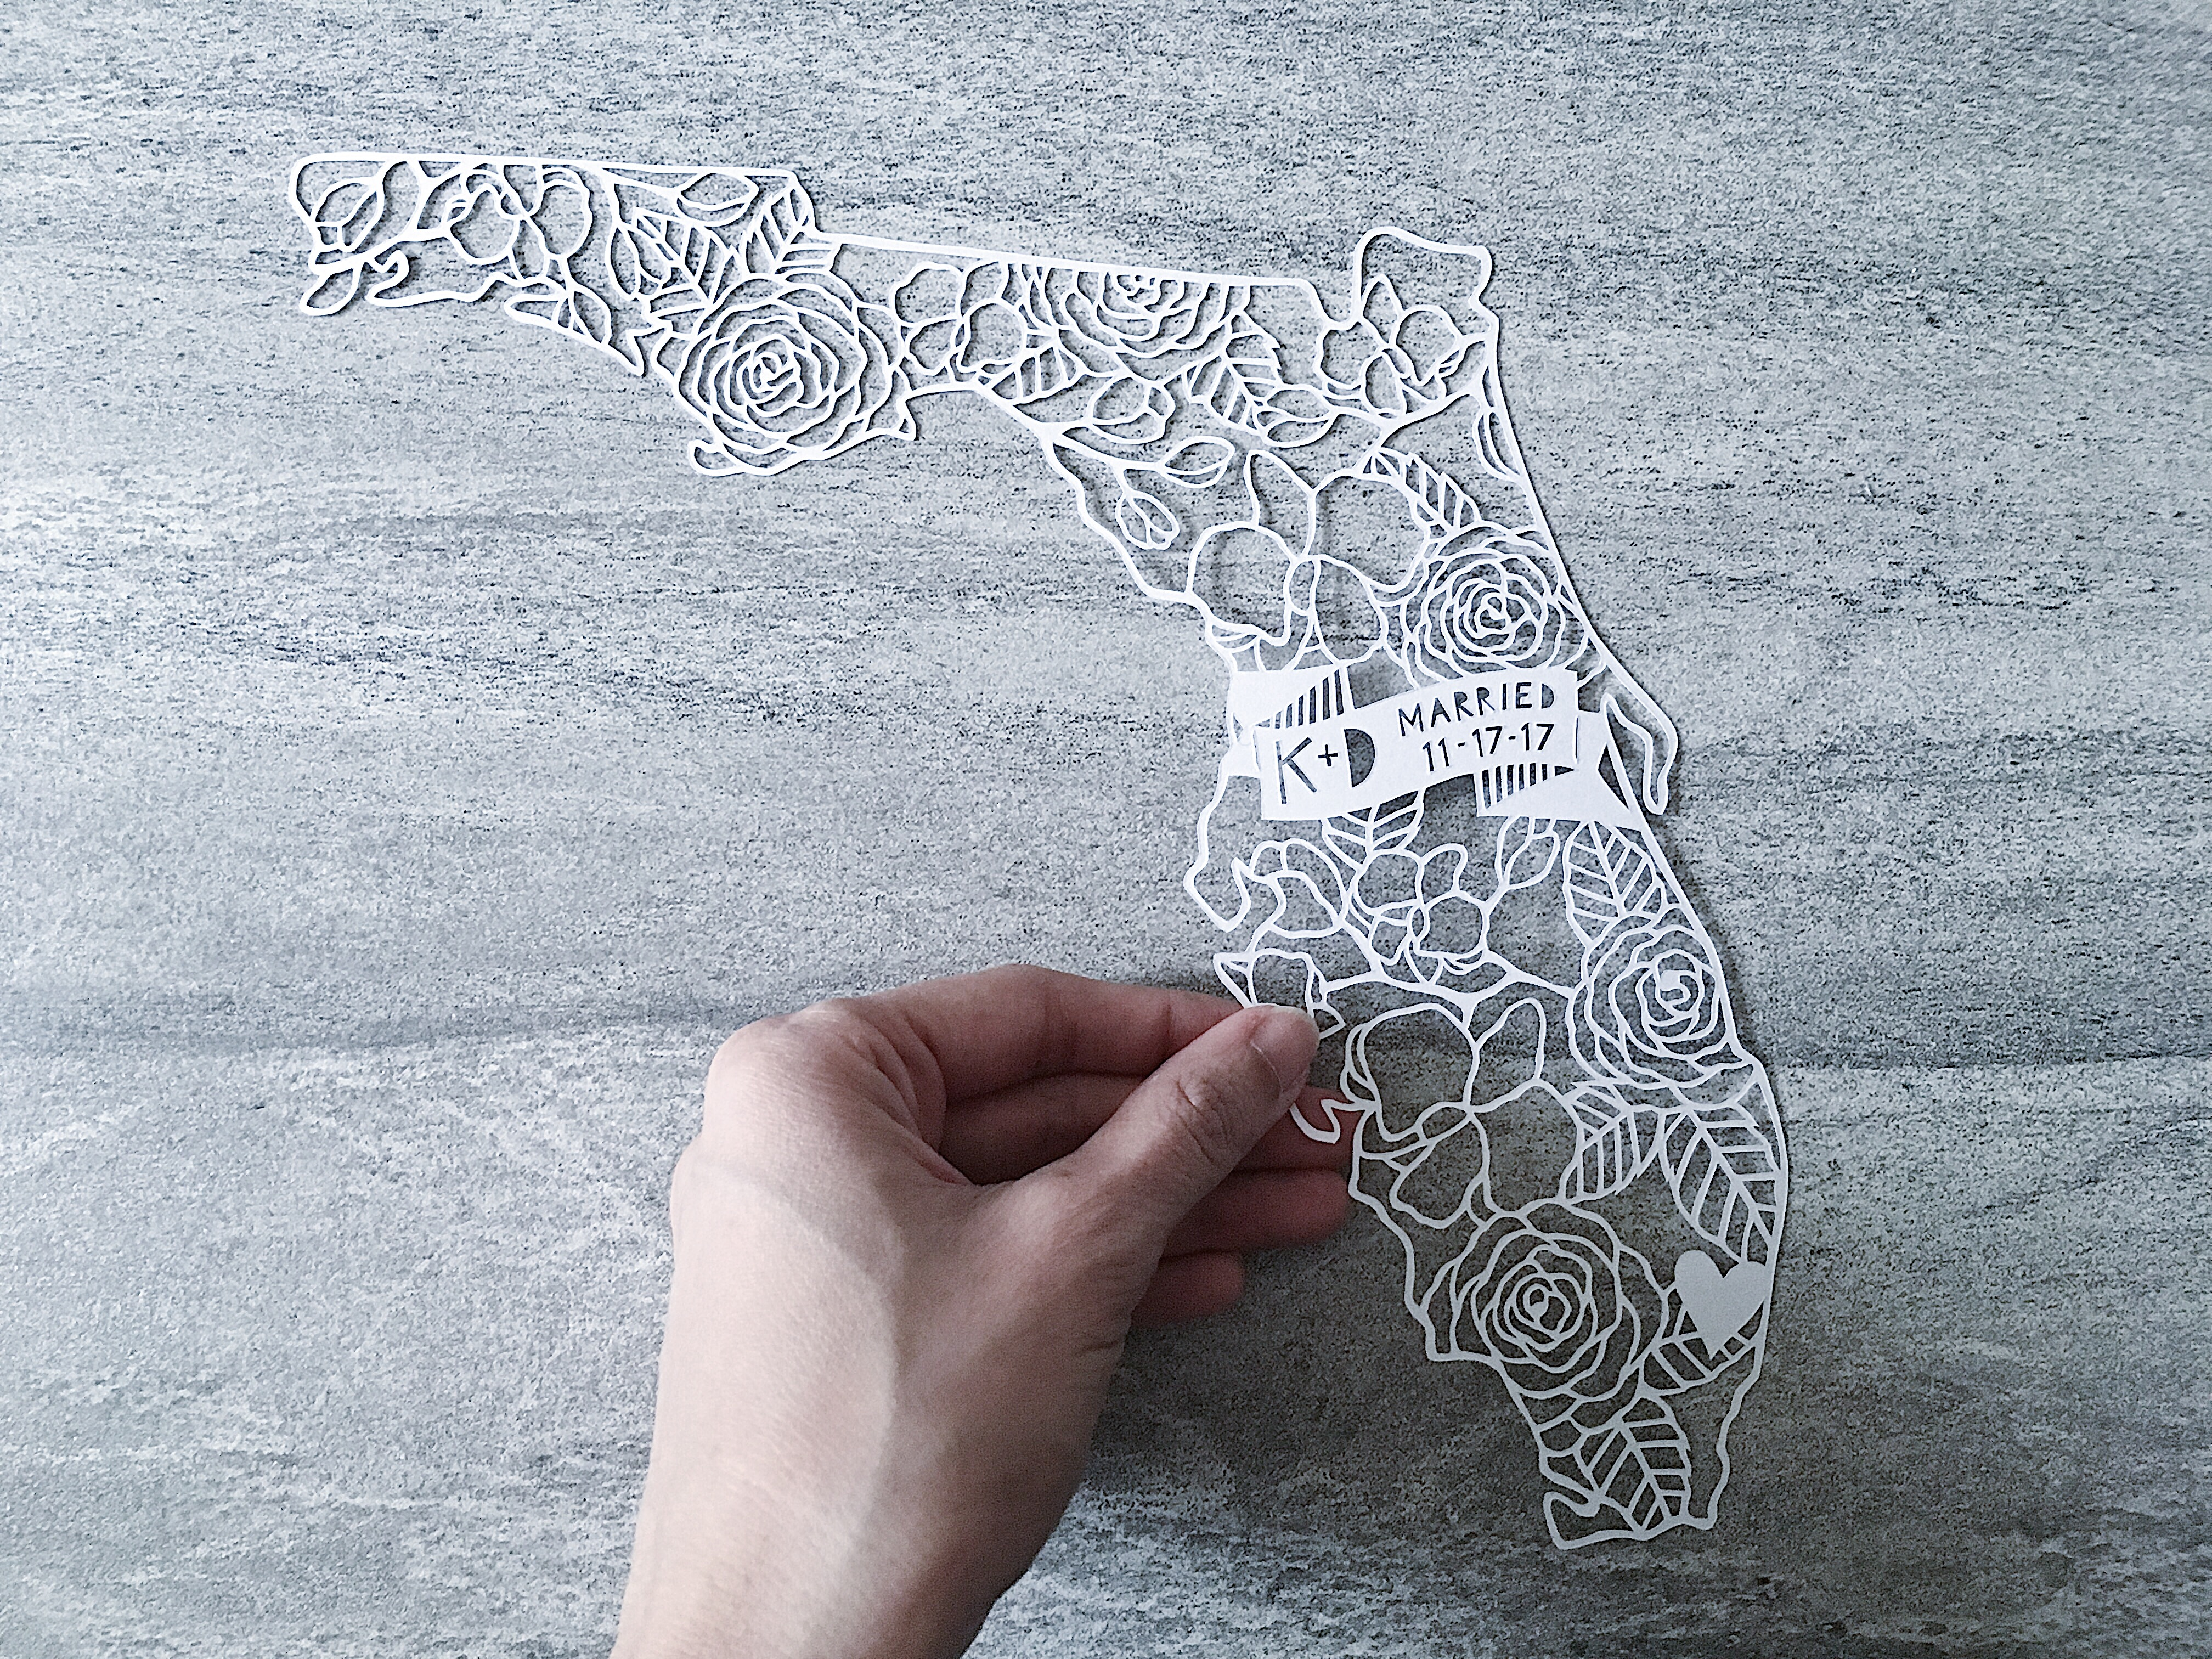 custom-anniversary-gift-florida-wedding-map-papercutting-papercut-art-handcut-home-decor (2)